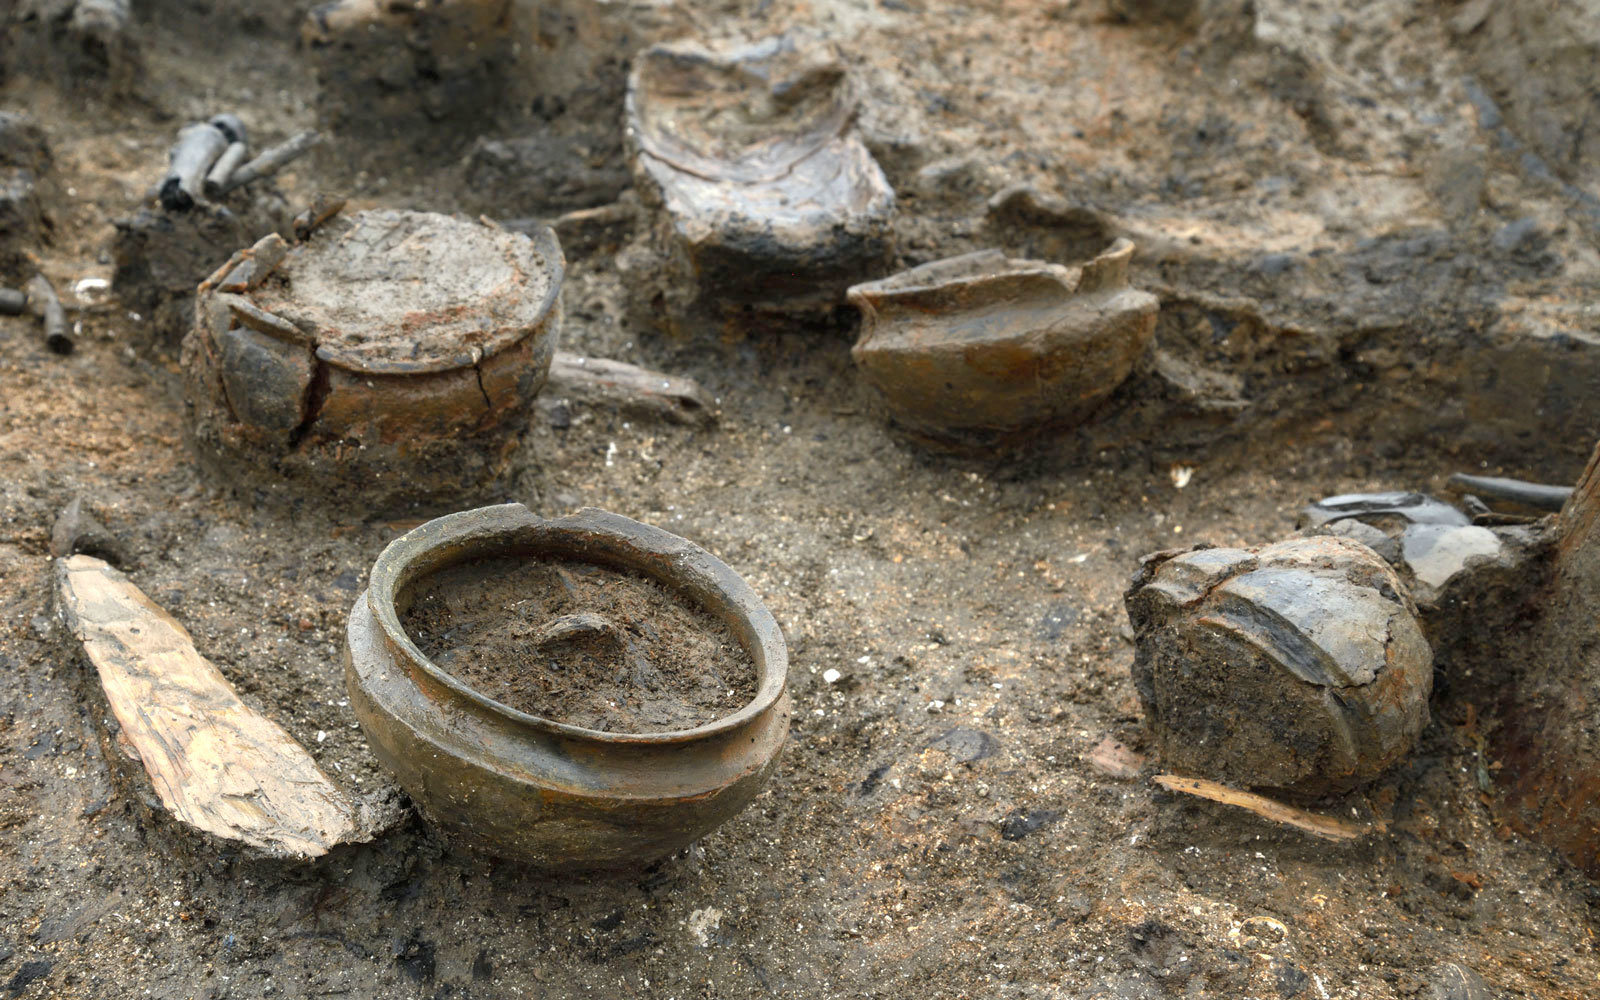 3,000-Year-Old 'British Pompeii' Unearthed by Archaeologists